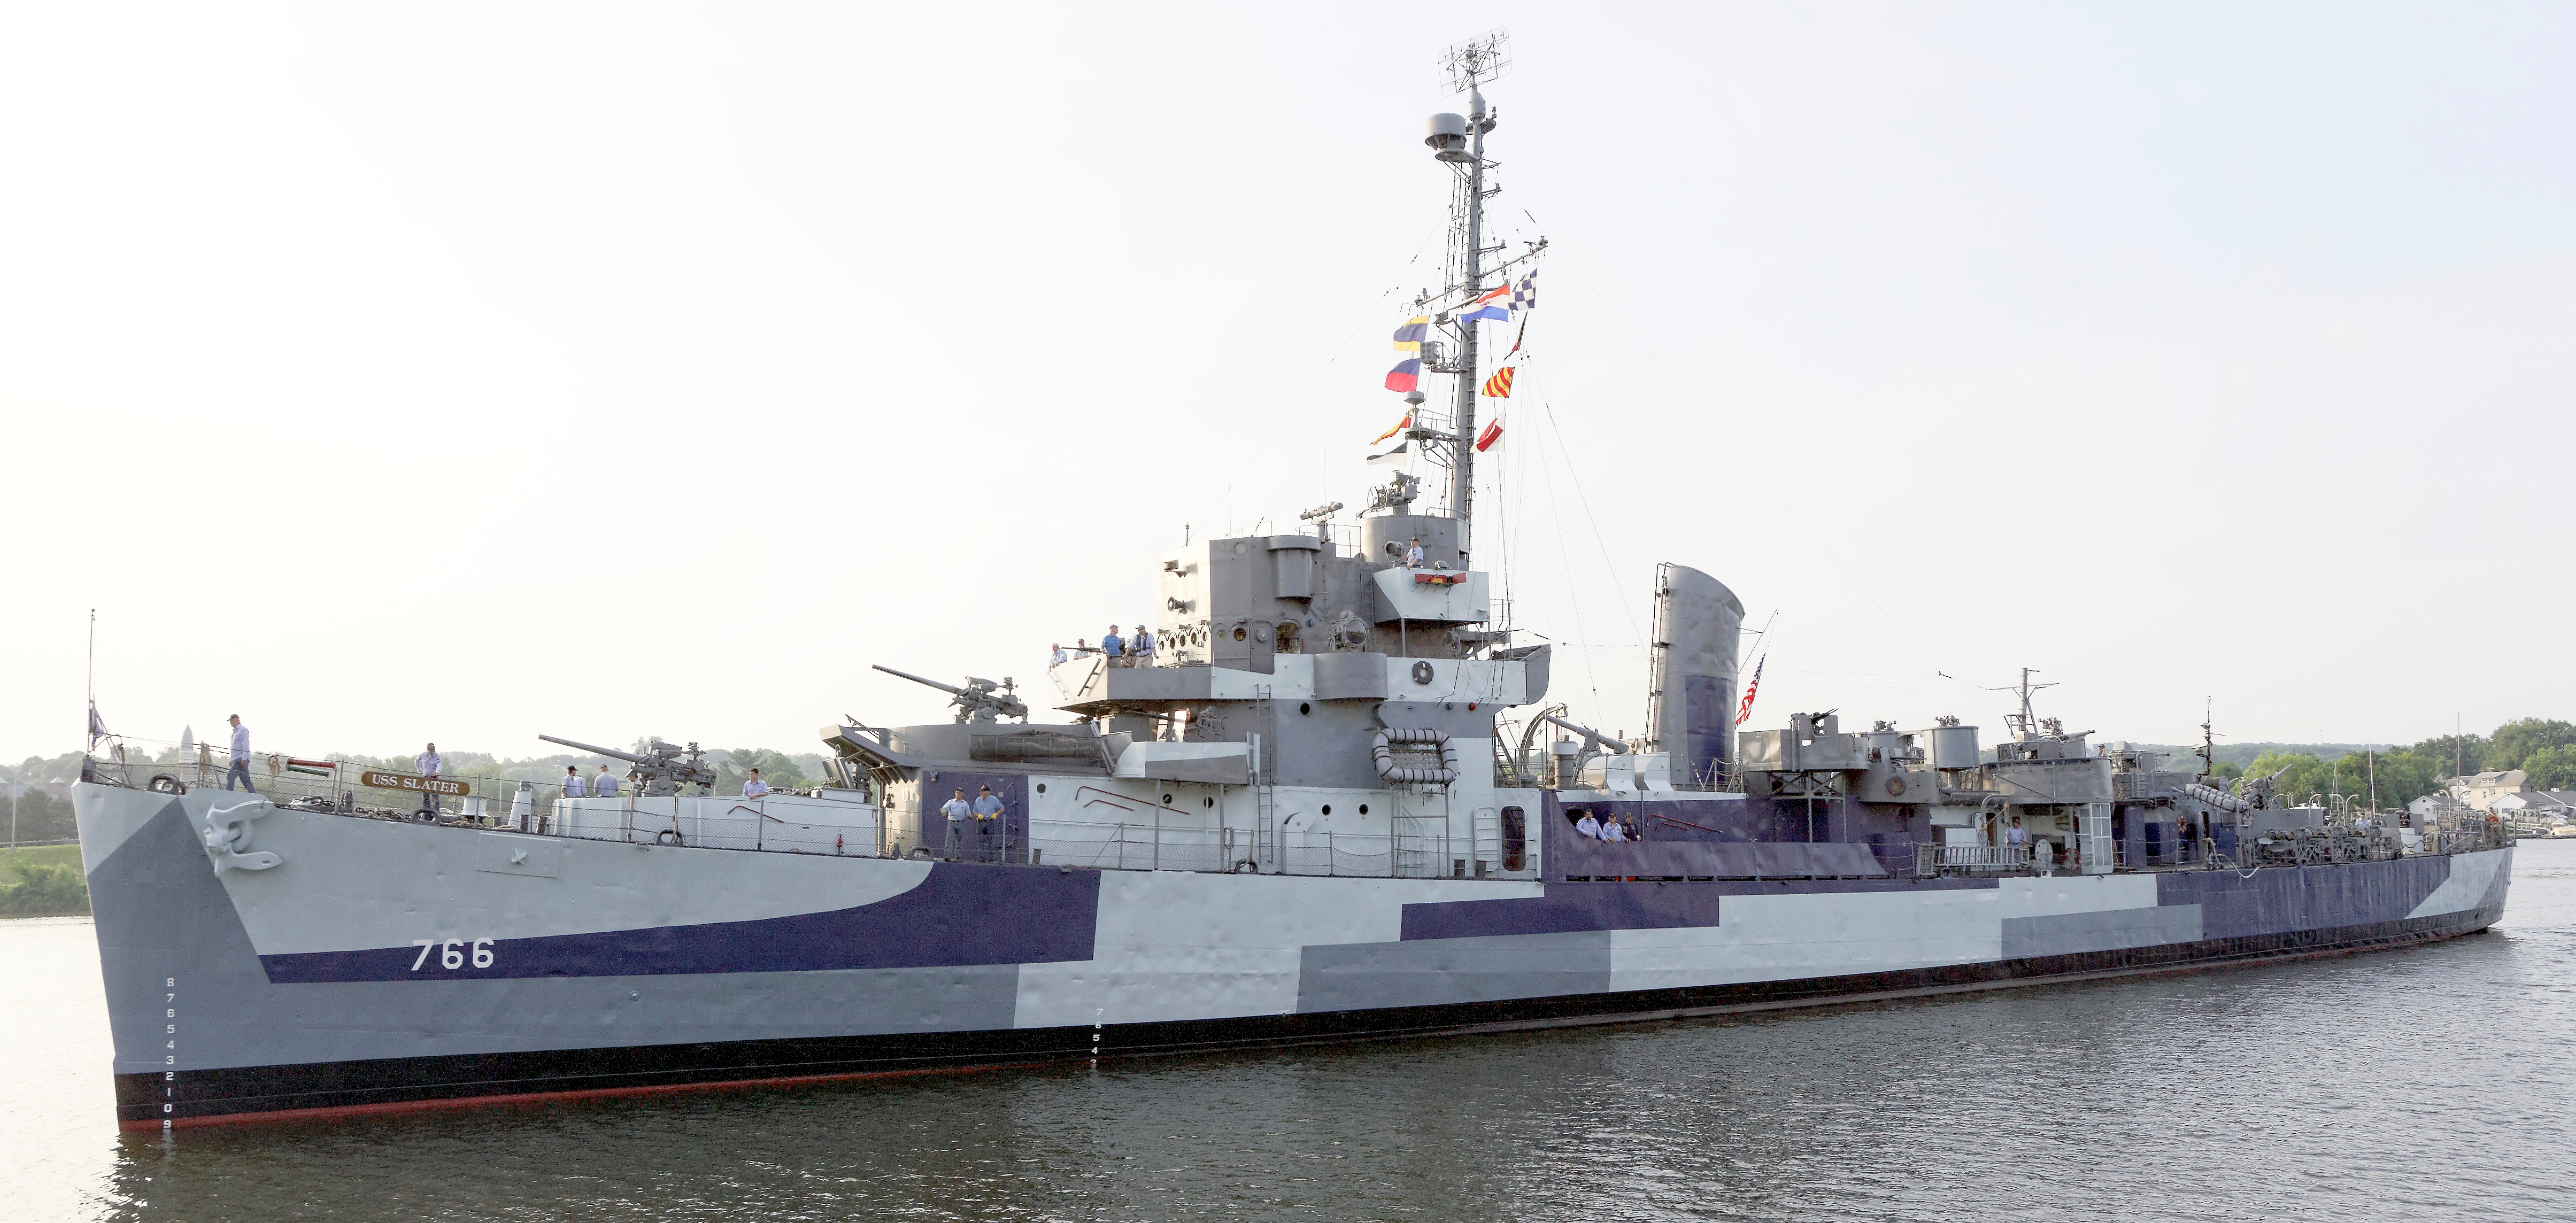 The Slater 2014, painted as she looked in 1945.